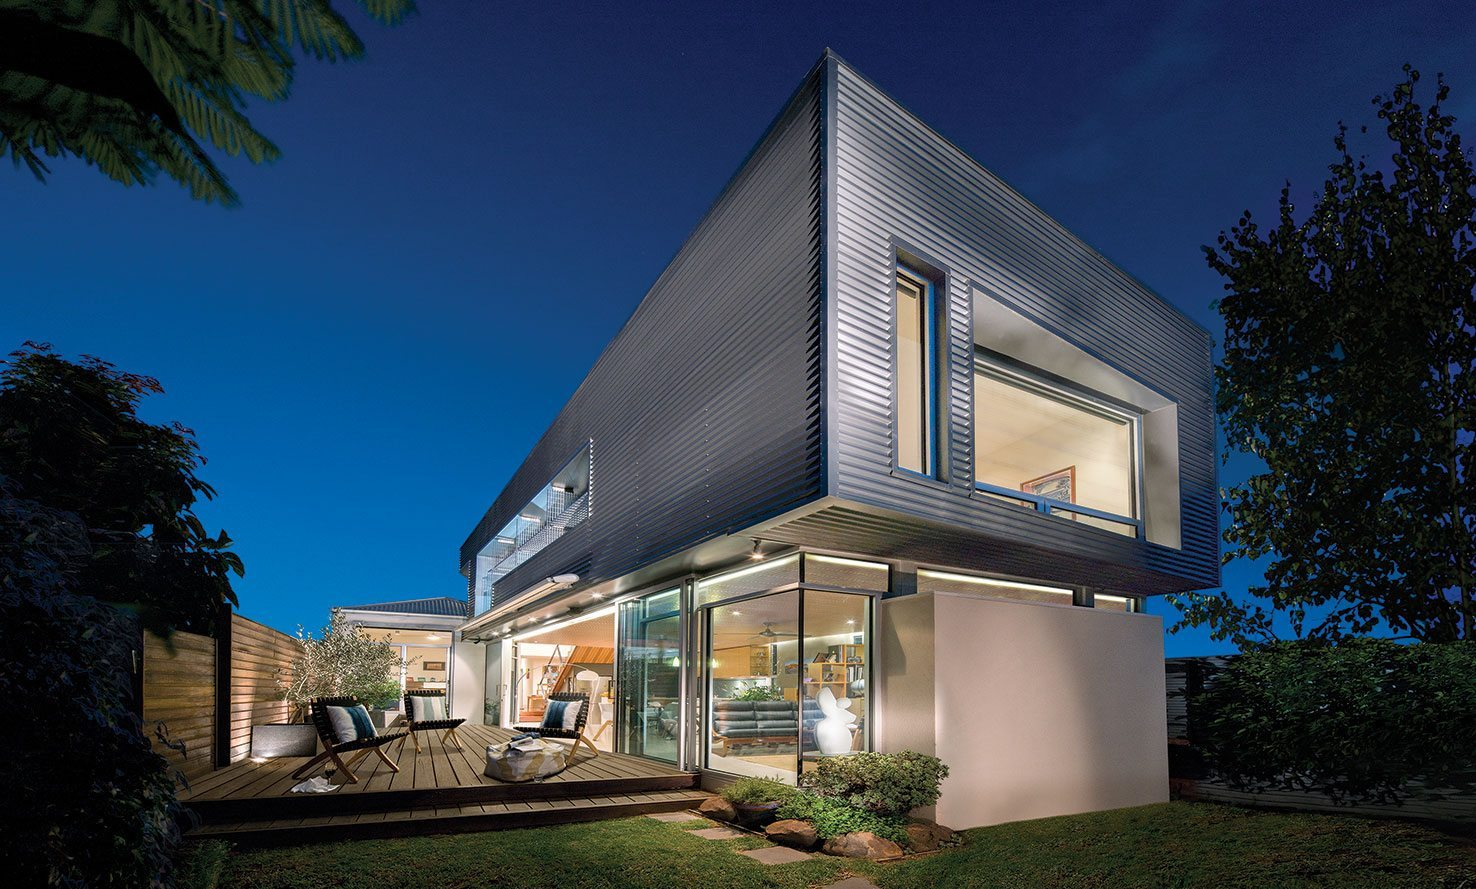 Beautiful metal sheeting duplex house in evening